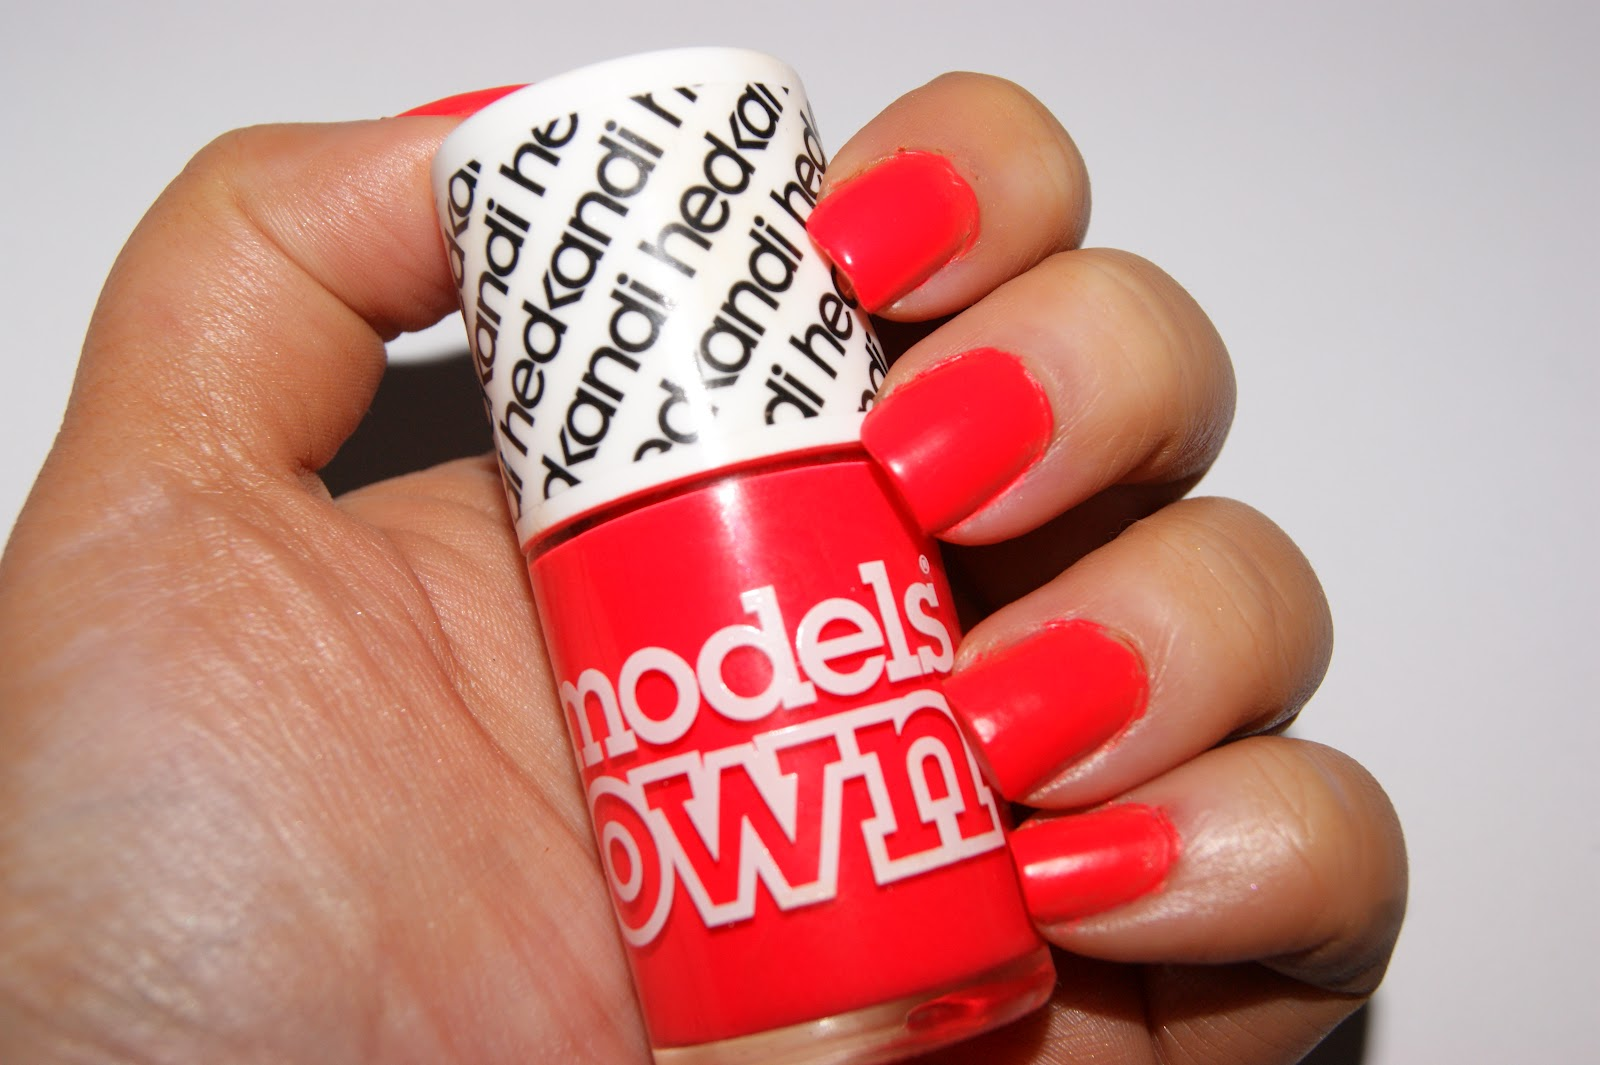 Hed Kandi x Models Own Nail Polish Collection Hed Kandi x Models Own Nail Polish Collection new picture